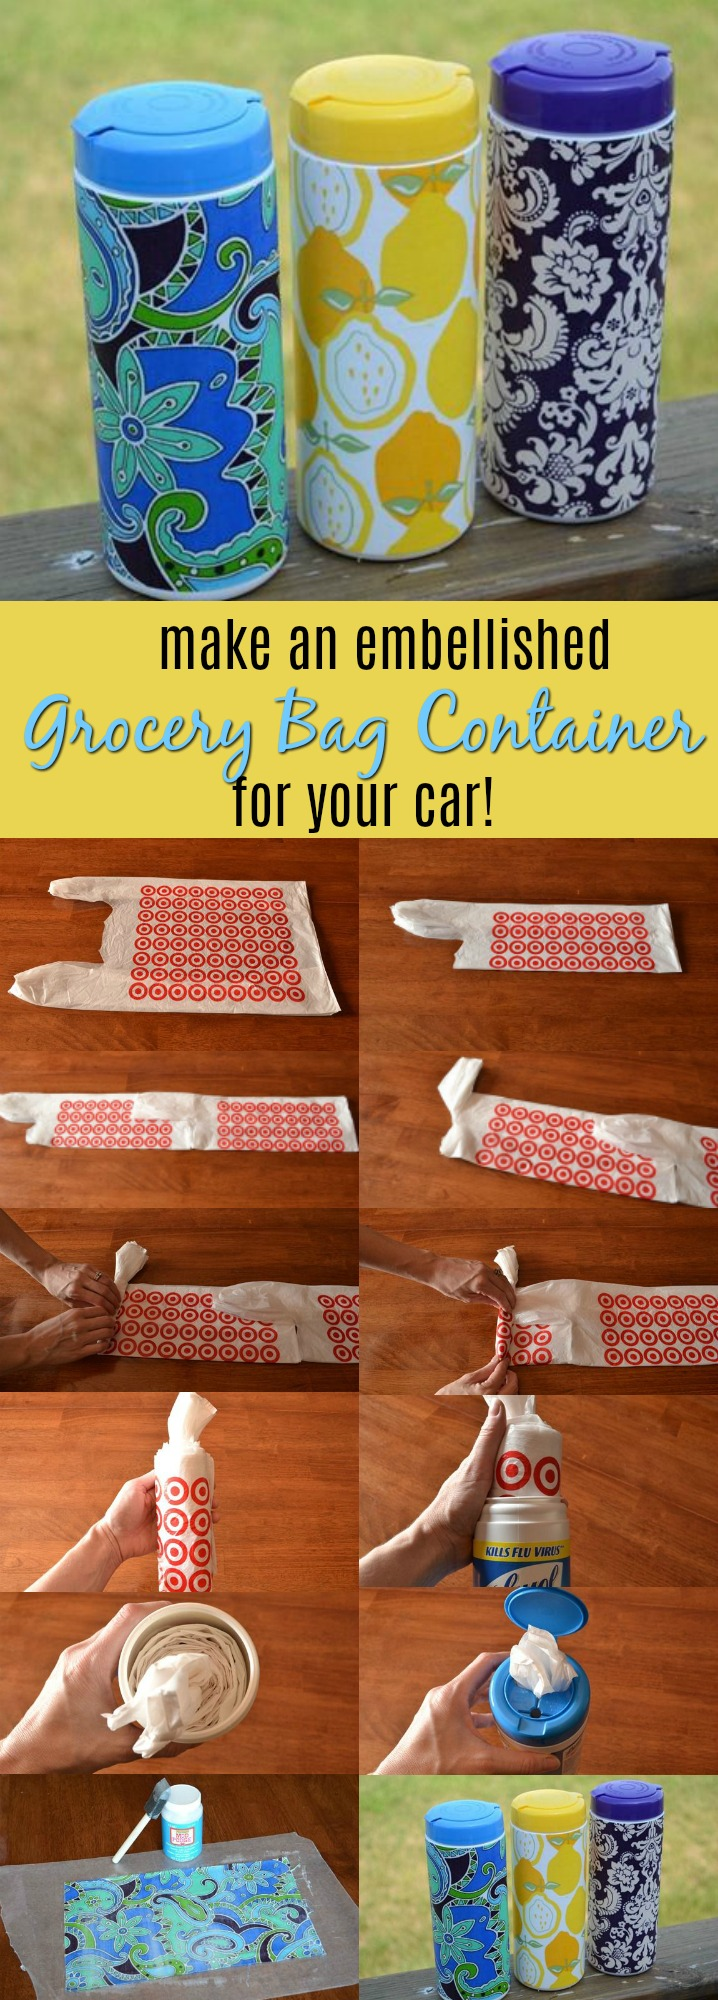 make an embellished grocery bag container for your car - very handy!